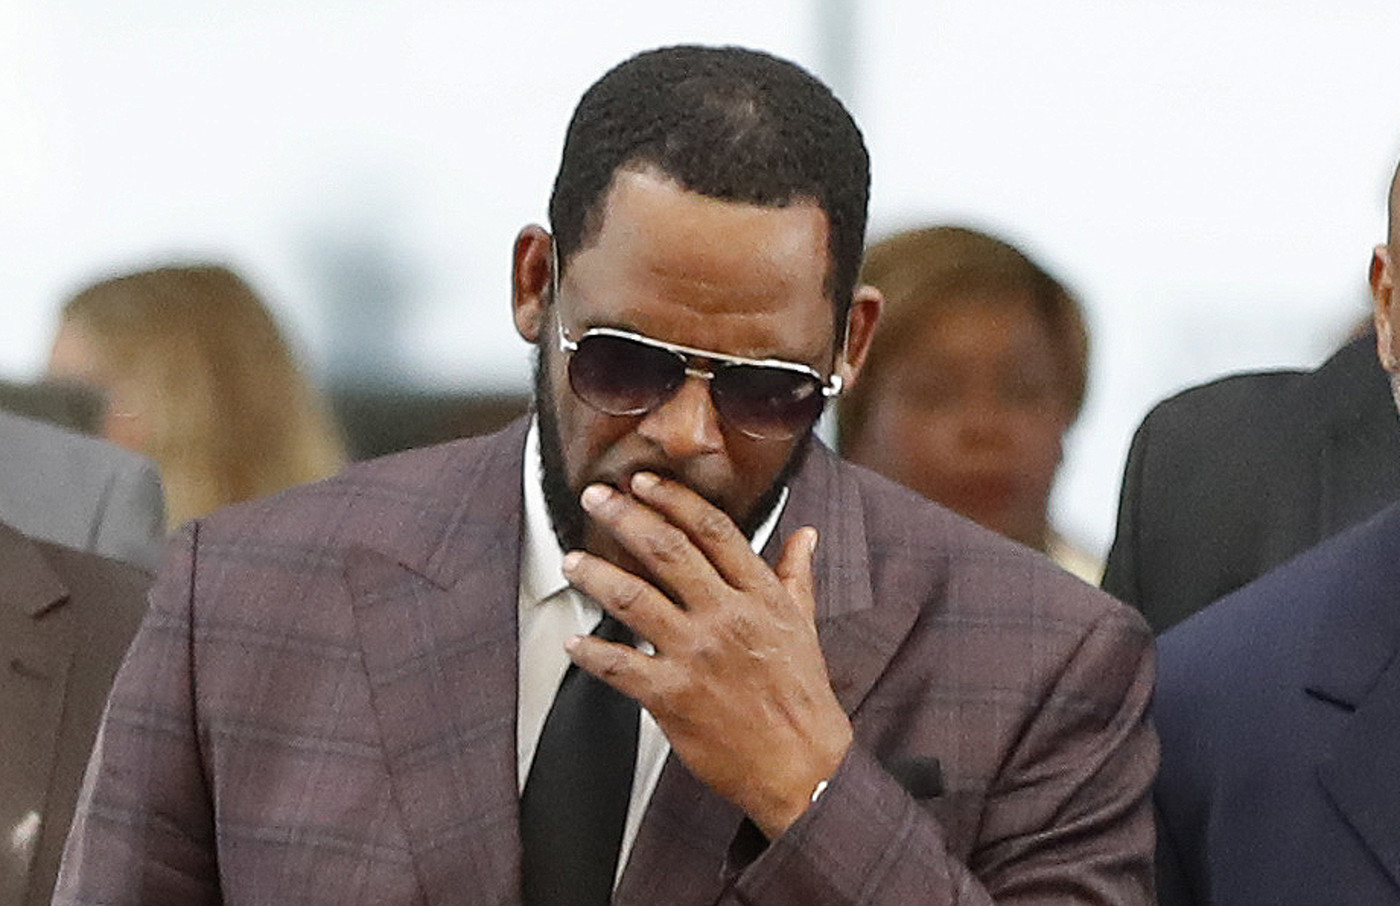 R. Kelly court appearance